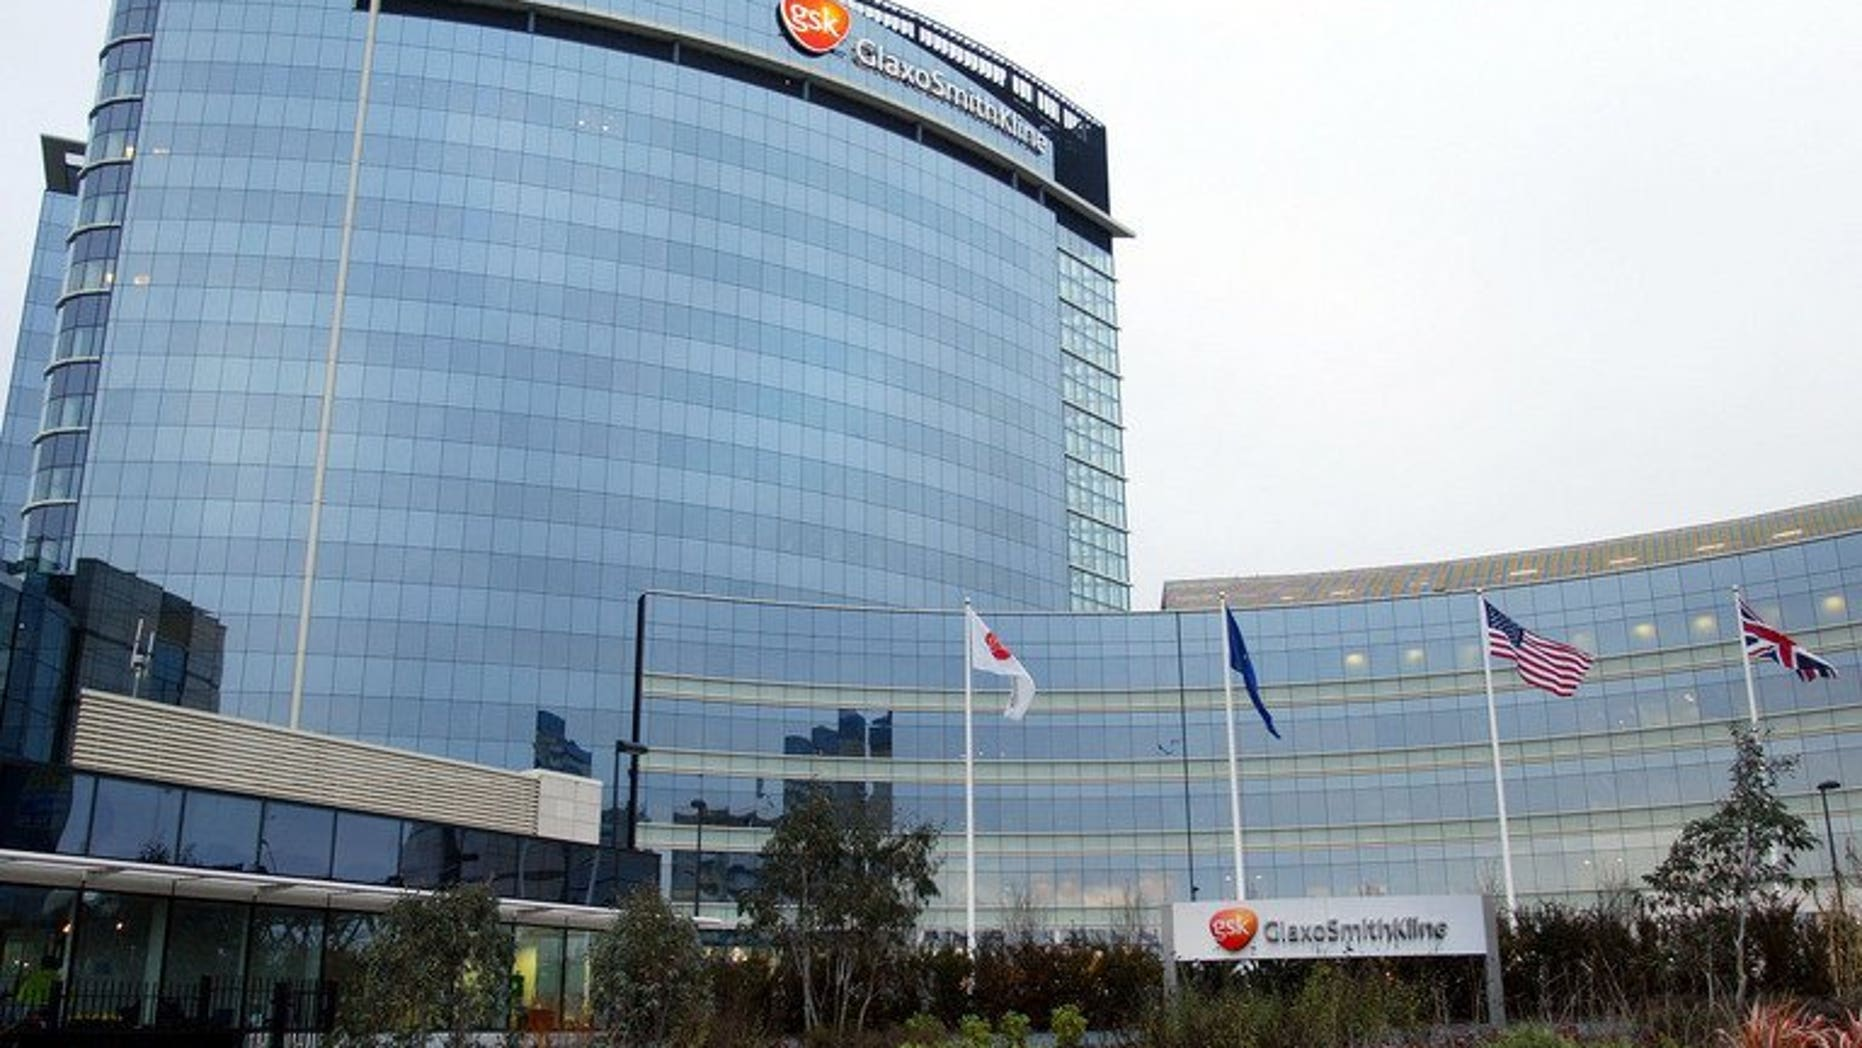 The headquarters of pharmaceutical company GlaxoSmithKline (GSK) in west London, pictured in 2002. Chinese police have detained four top executives of GSK in China for alleged bribery and other offences, according to state media.